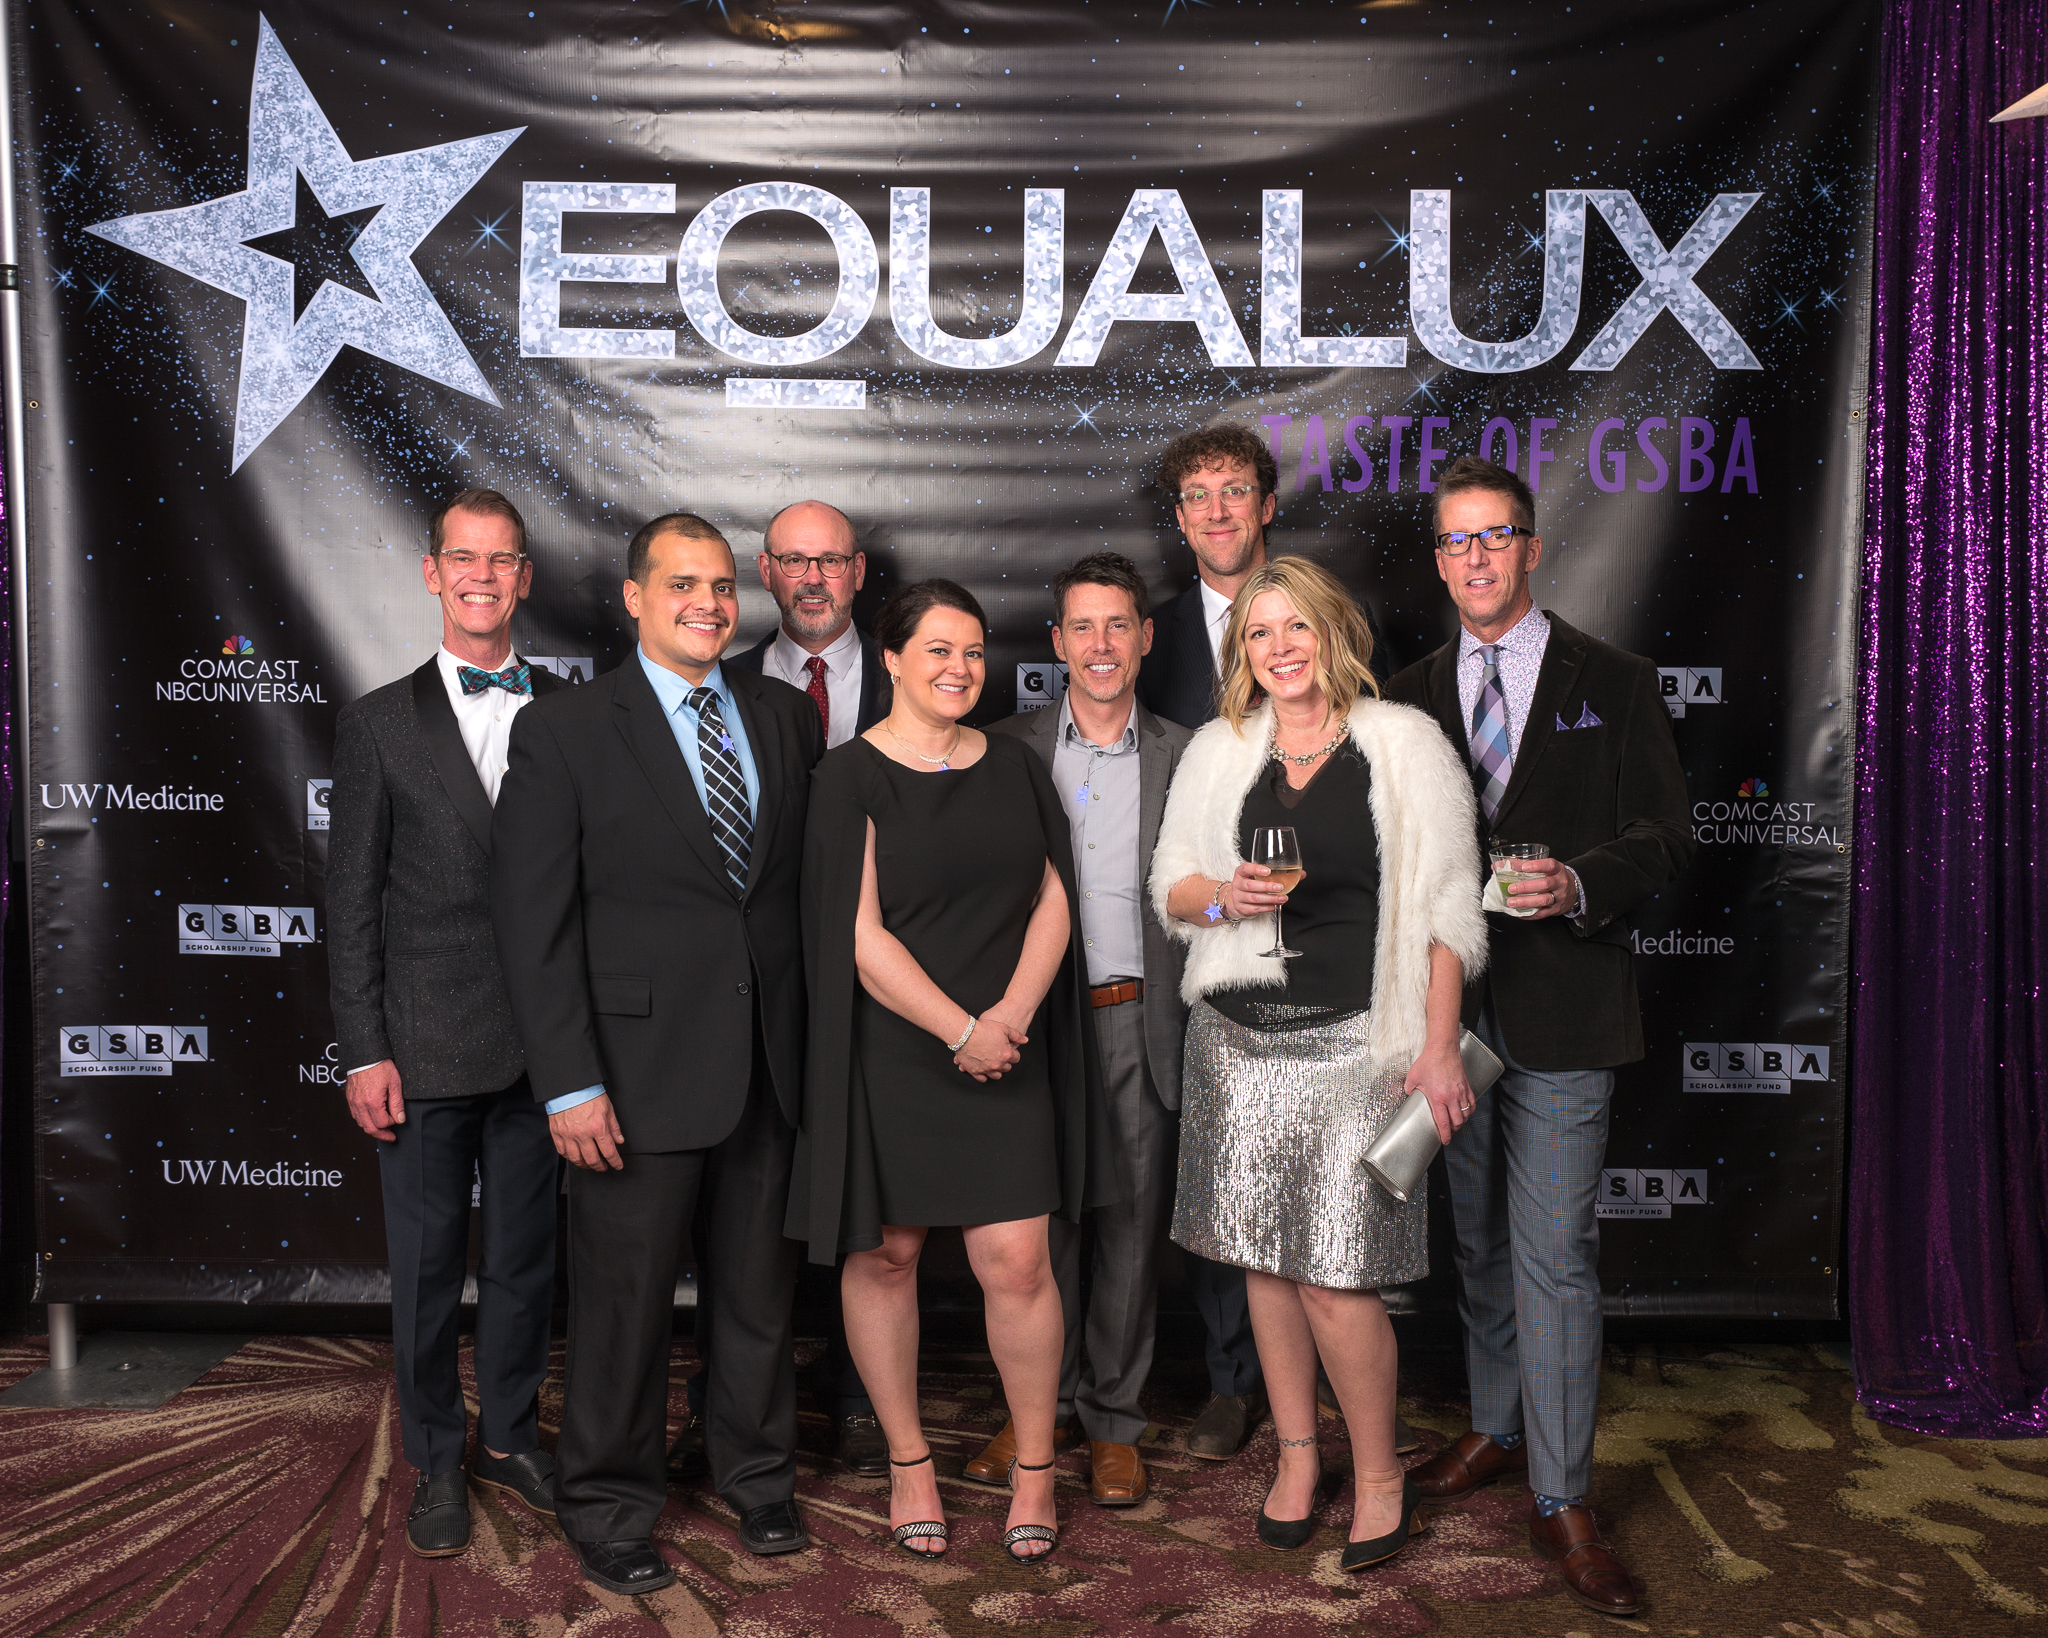 111718_GSBA EQUALUX at The Westin Seattle (Credit- Nate Gowdy)-131.jpg